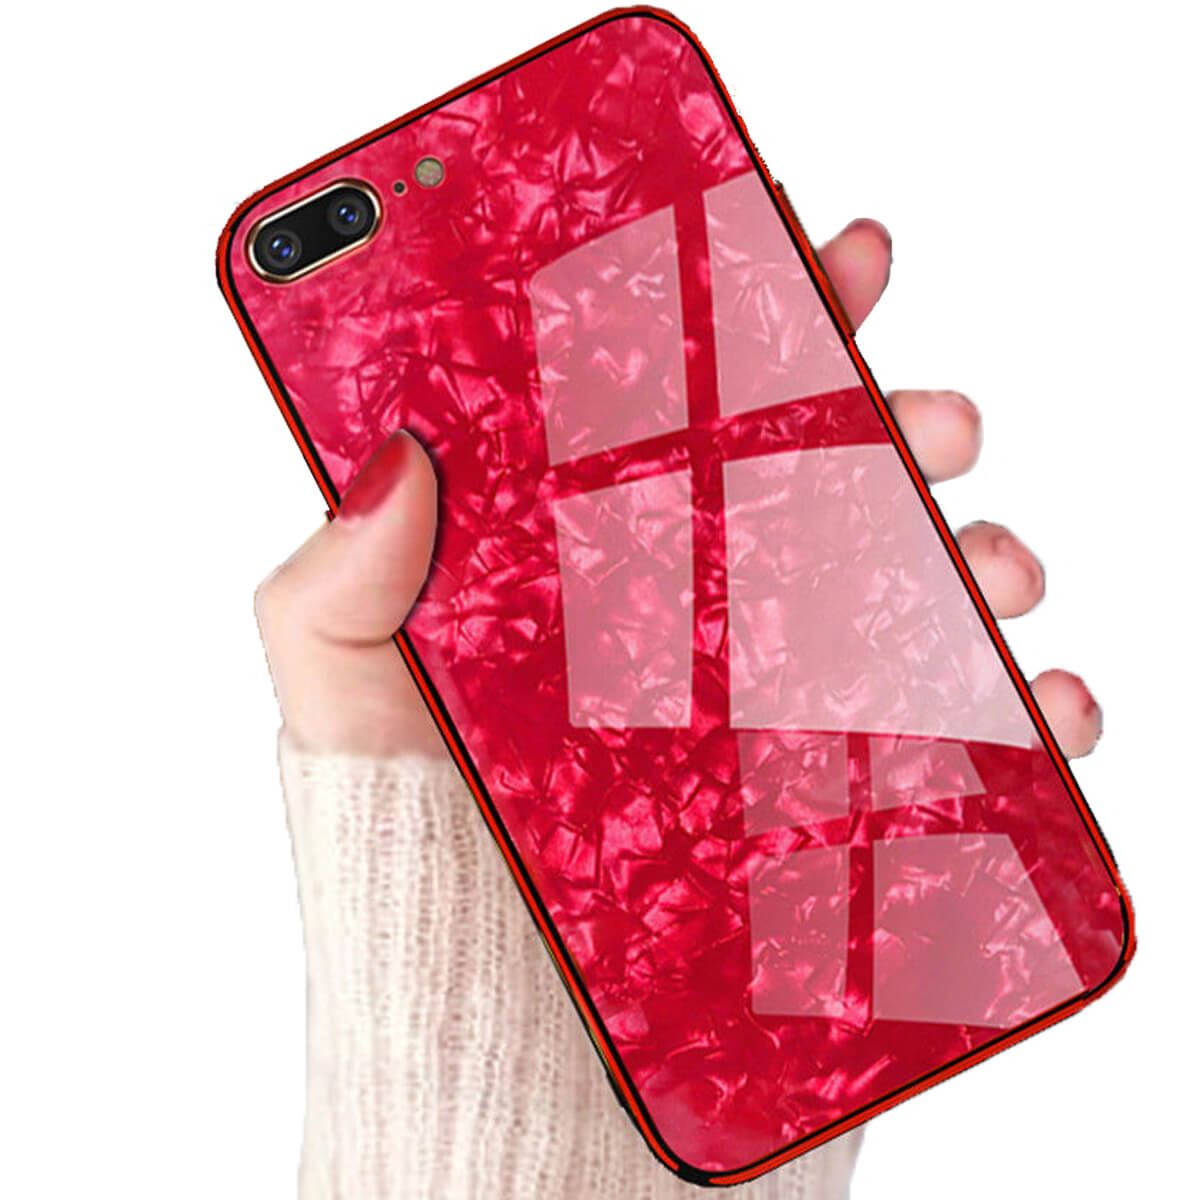 Marble-Tempered-Glass-Case-For-Apple-iPhone-X-XS-XR-Max-10-8-7-6s-6-Luxury-Cover thumbnail 12